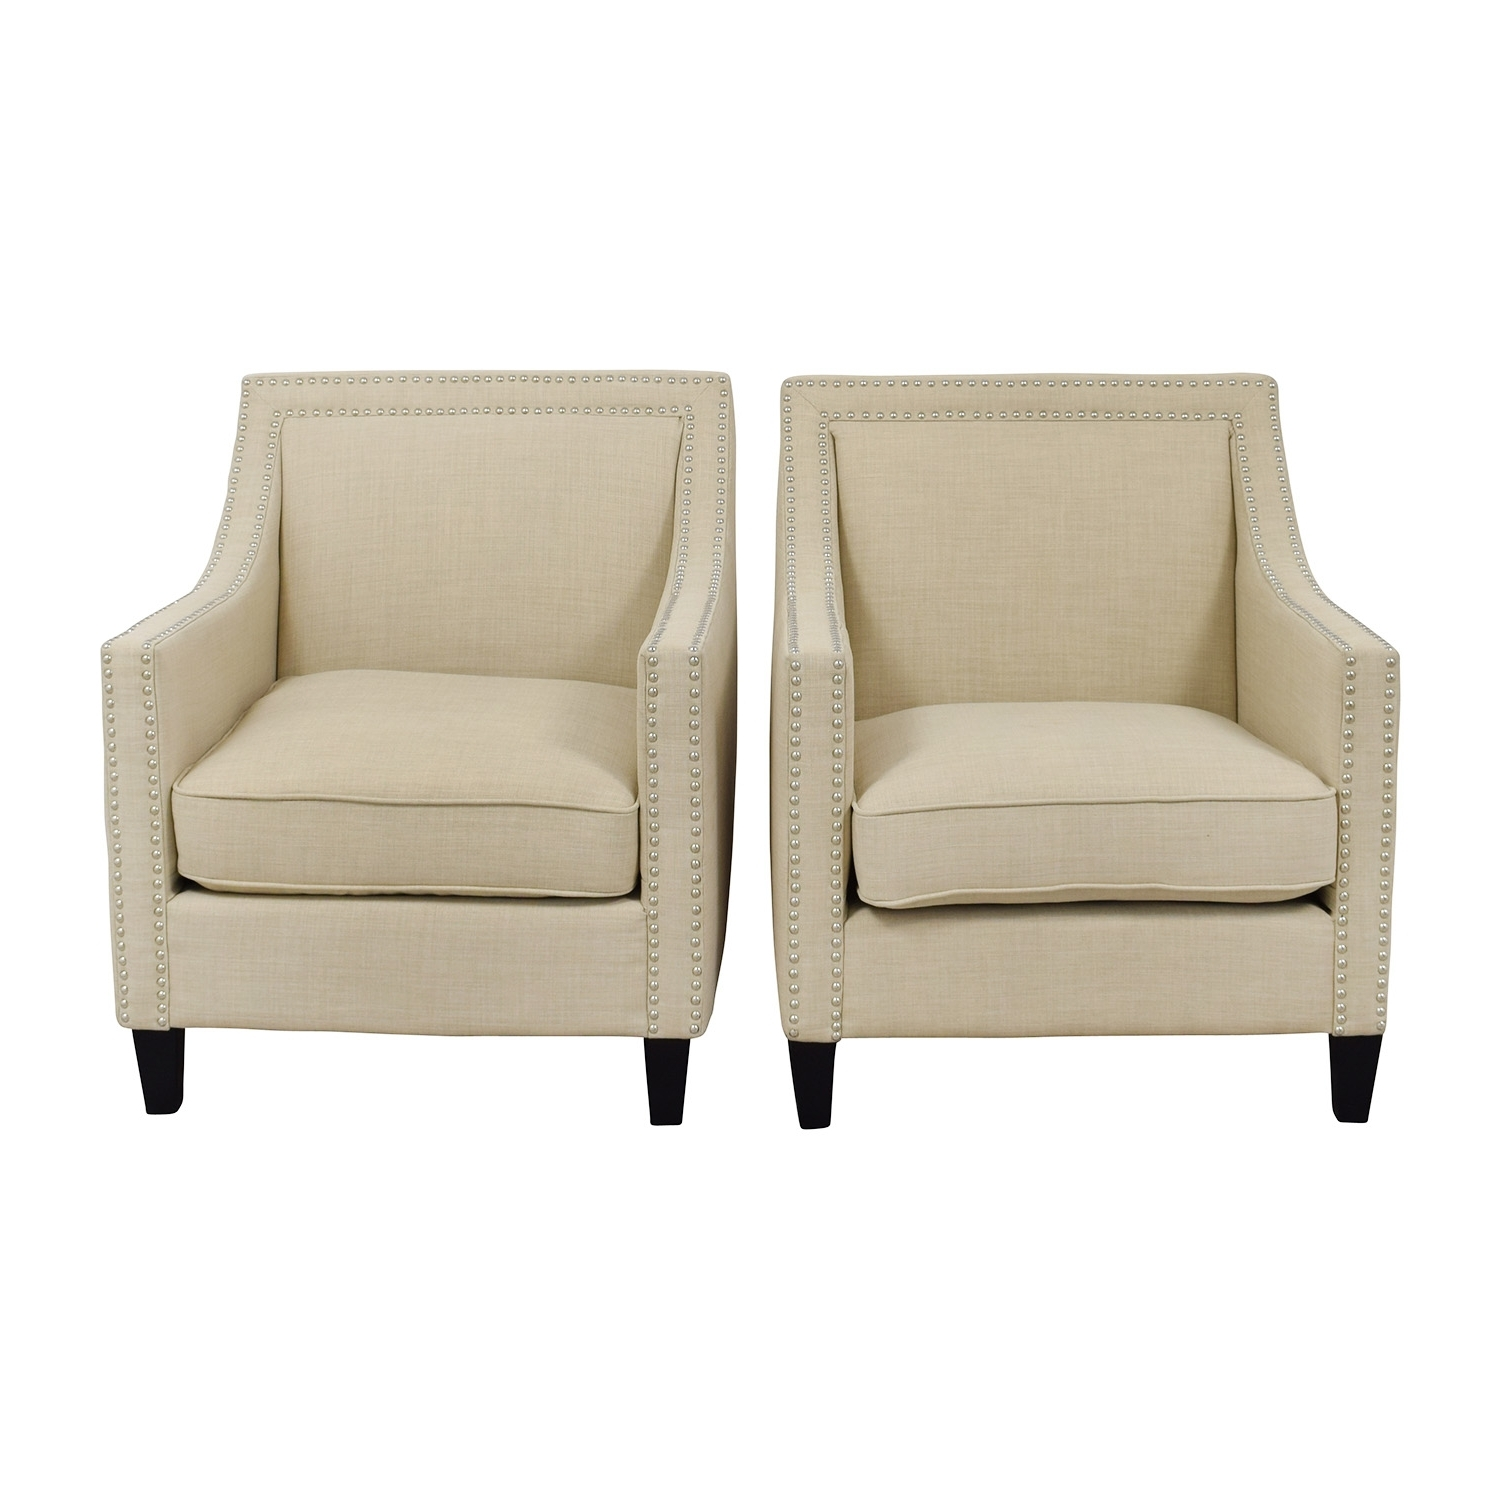 [%67% Off – Studded Beige Sofa Arm Chairs / Chairs Pertaining To Widely Used Sofa Arm Chairs|Sofa Arm Chairs In Newest 67% Off – Studded Beige Sofa Arm Chairs / Chairs|Famous Sofa Arm Chairs Regarding 67% Off – Studded Beige Sofa Arm Chairs / Chairs|Popular 67% Off – Studded Beige Sofa Arm Chairs / Chairs Regarding Sofa Arm Chairs%] (View 1 of 15)